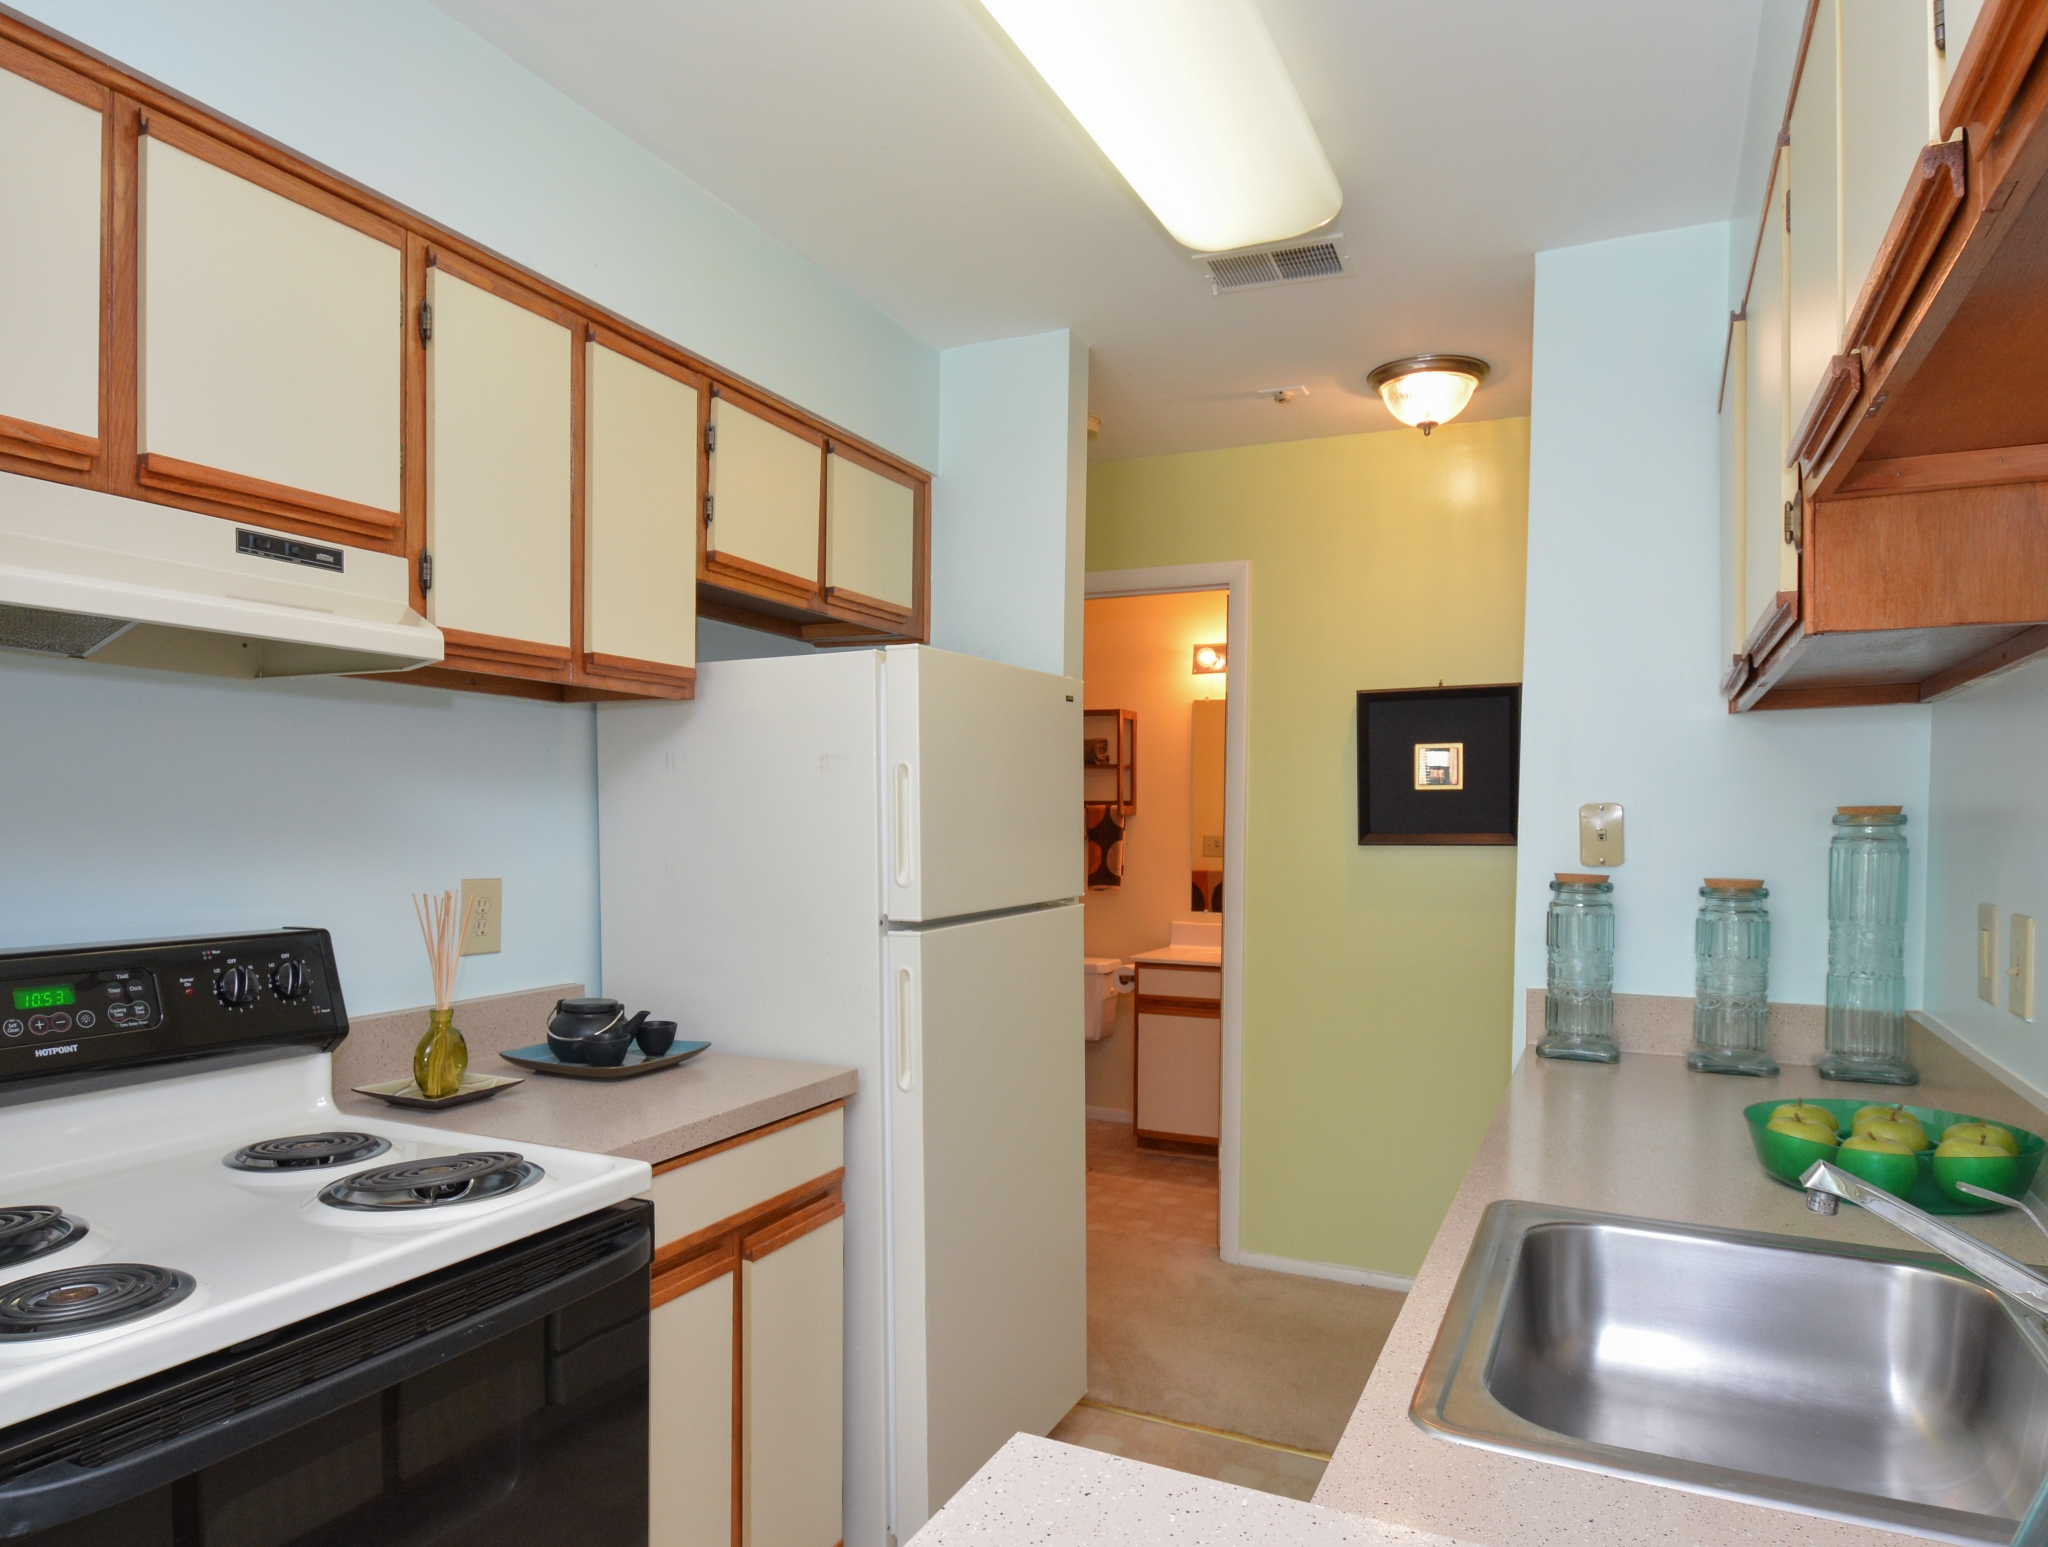 Spacious Kitchen | Apartments for rent in Laurel, MD | Spring House Apartments